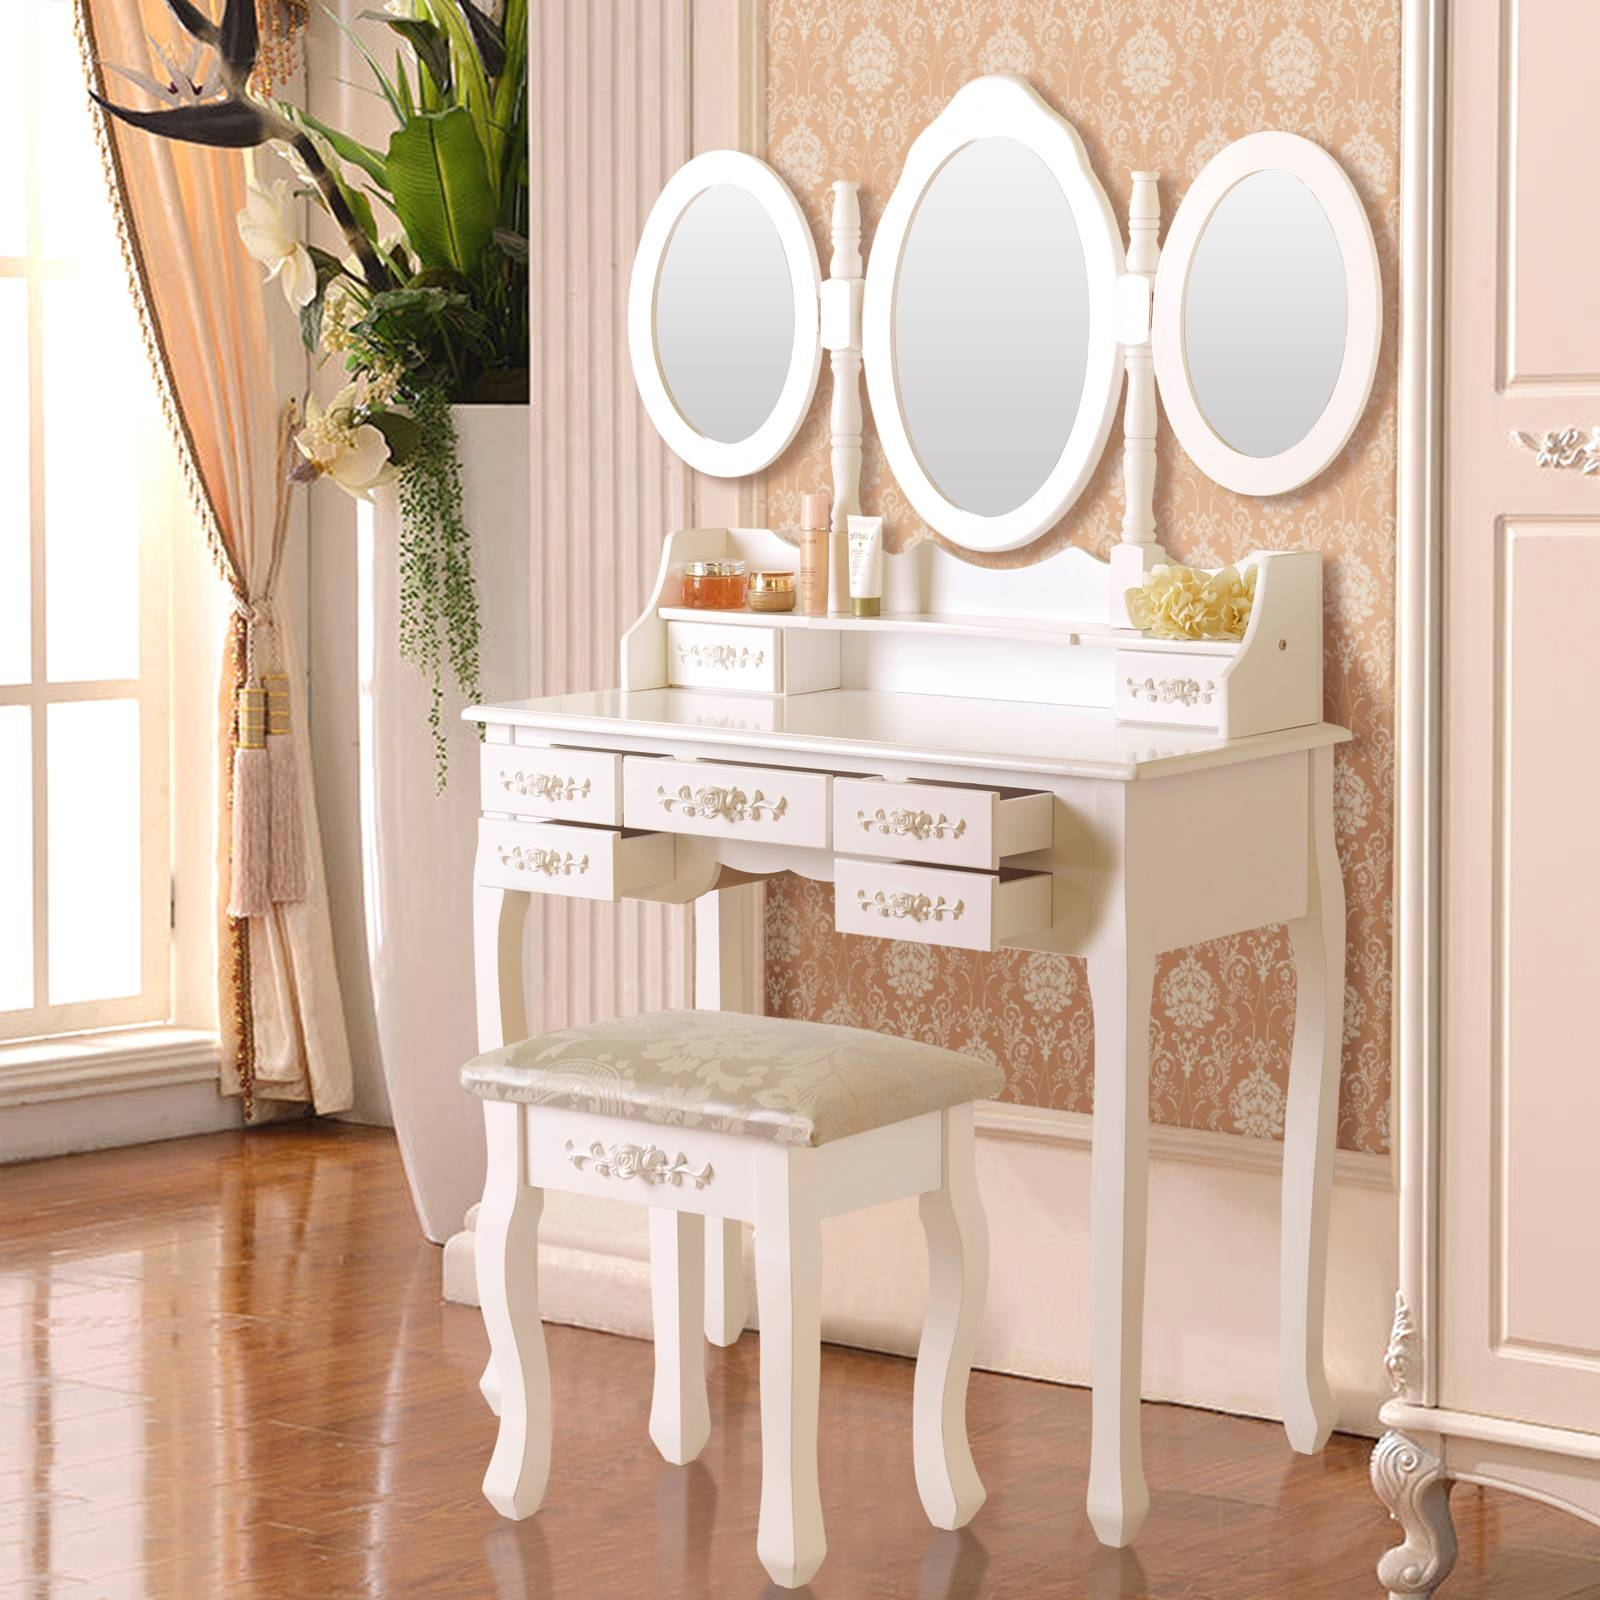 Bedroom Furniture : Dressing Table Diy Small Table Mirror Table intended for Decorative Dressing Table Mirrors (Image 2 of 25)